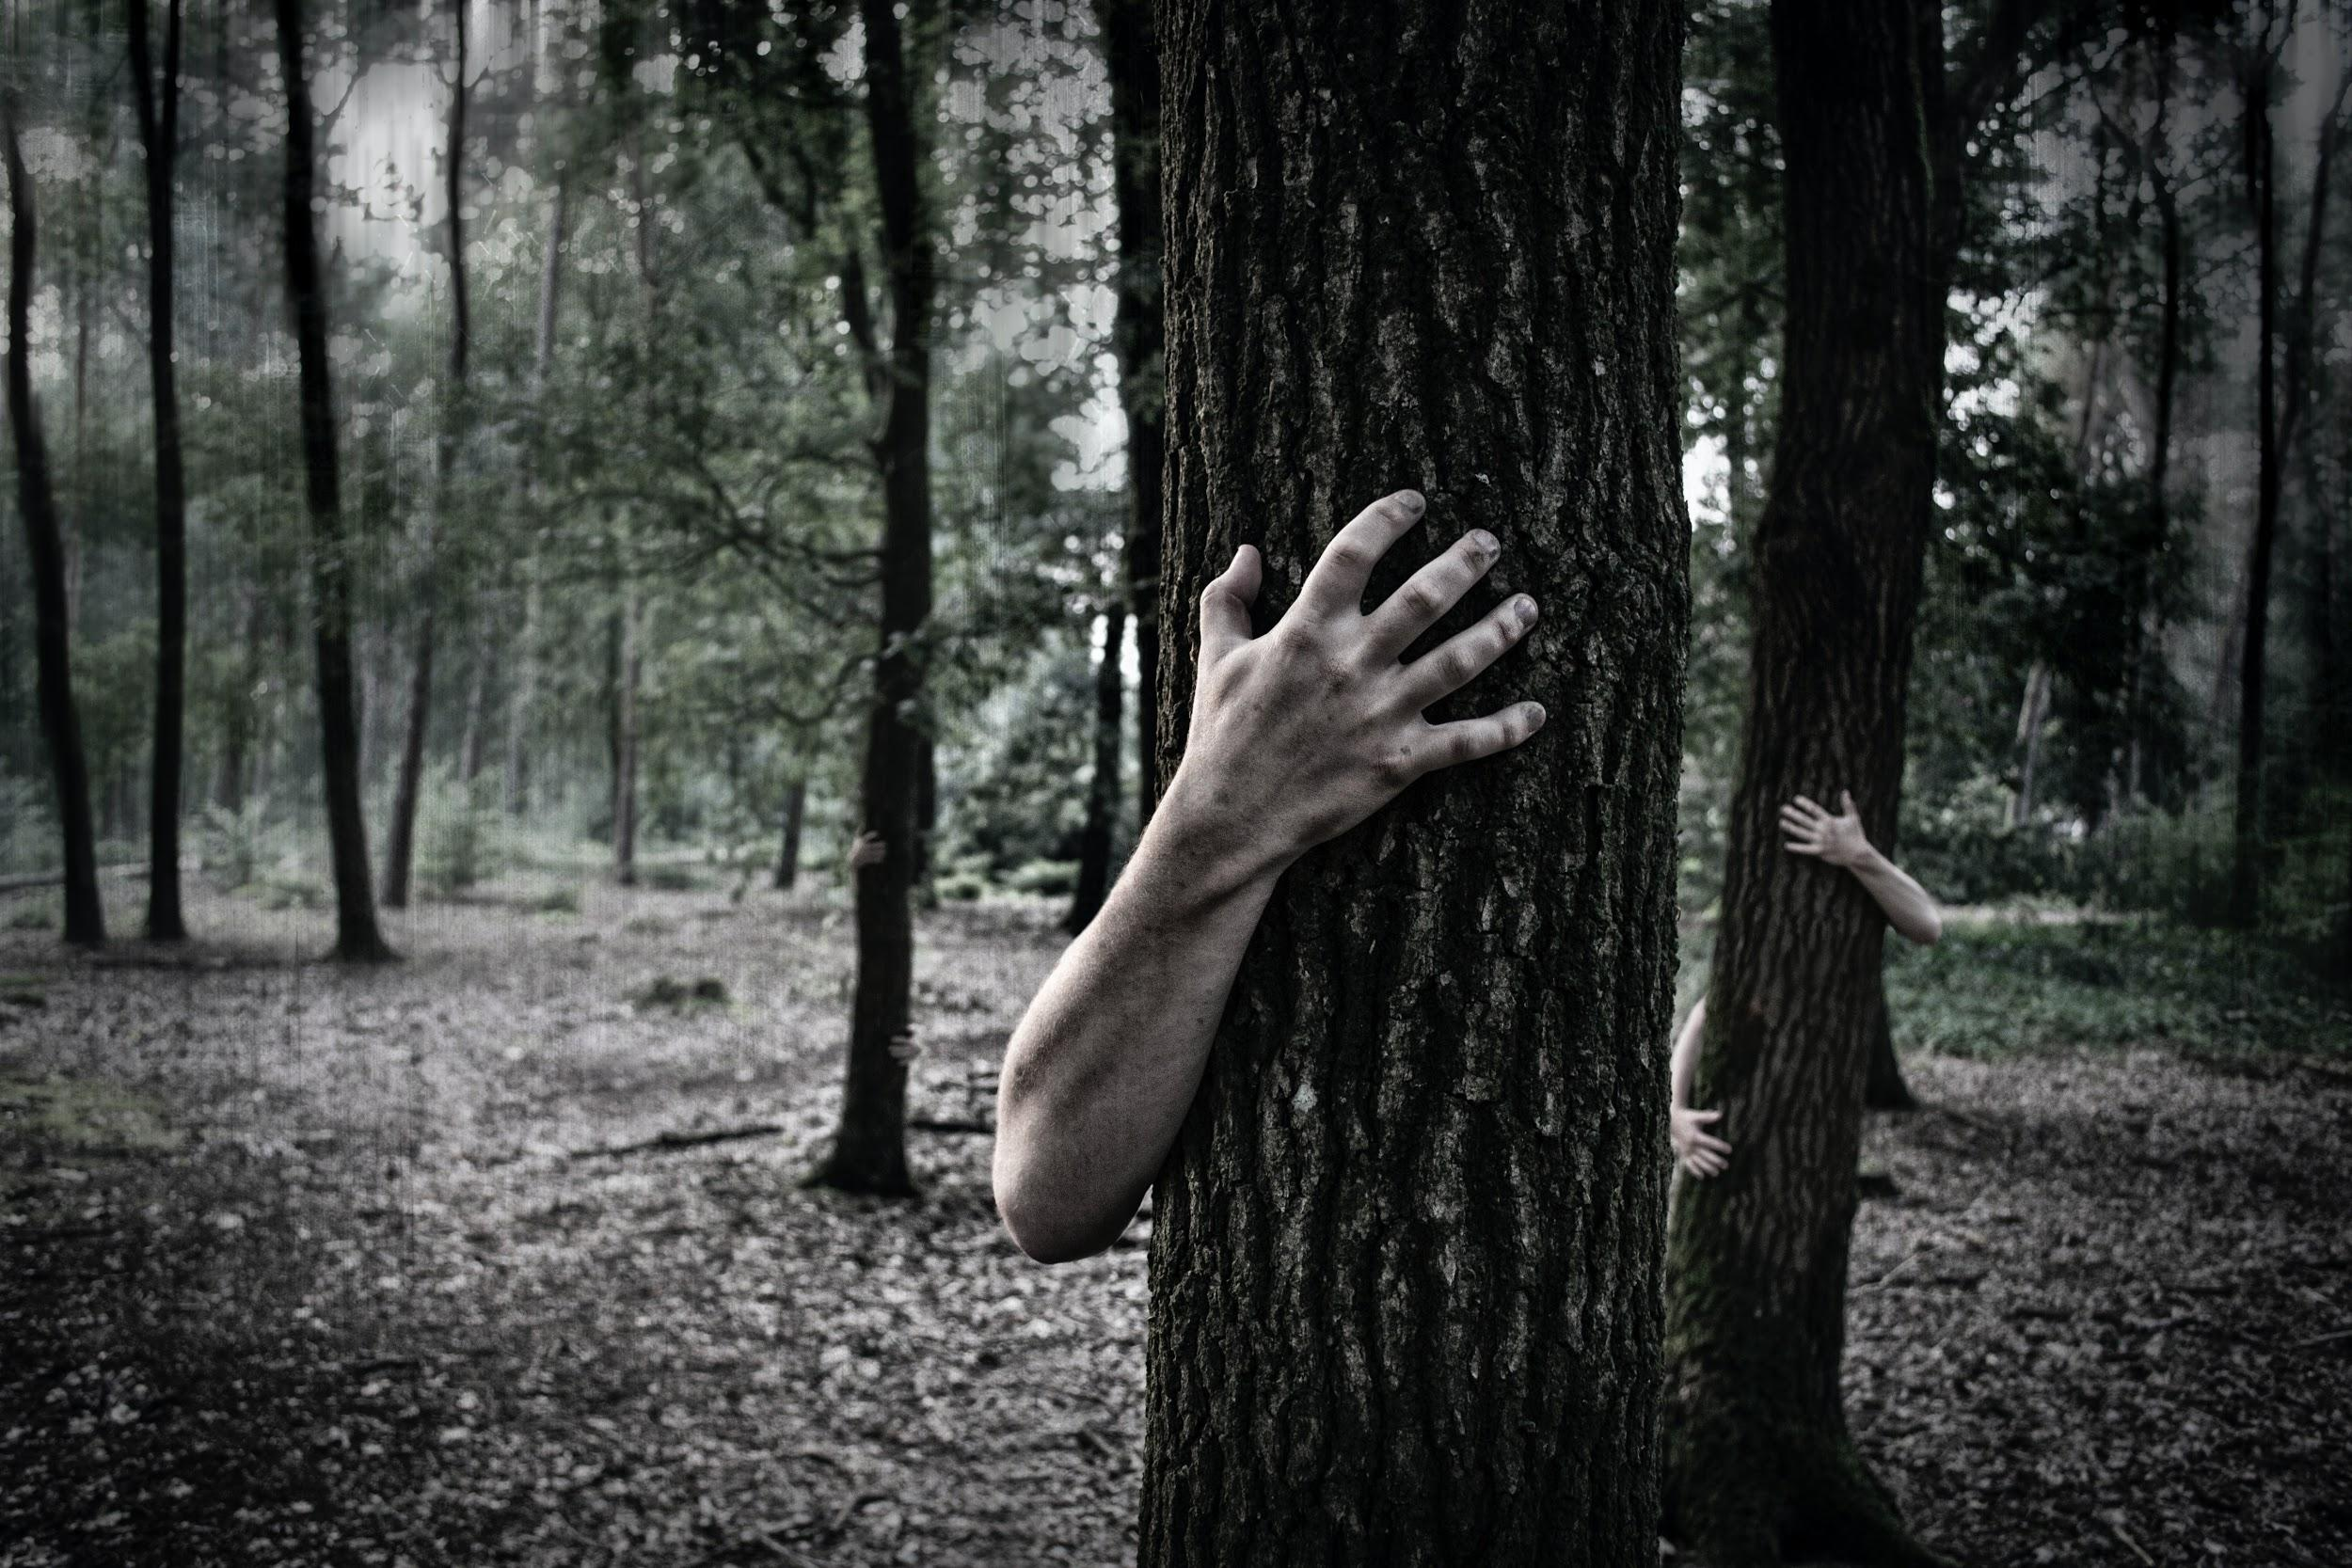 Scary dark forest with human hands on the trees